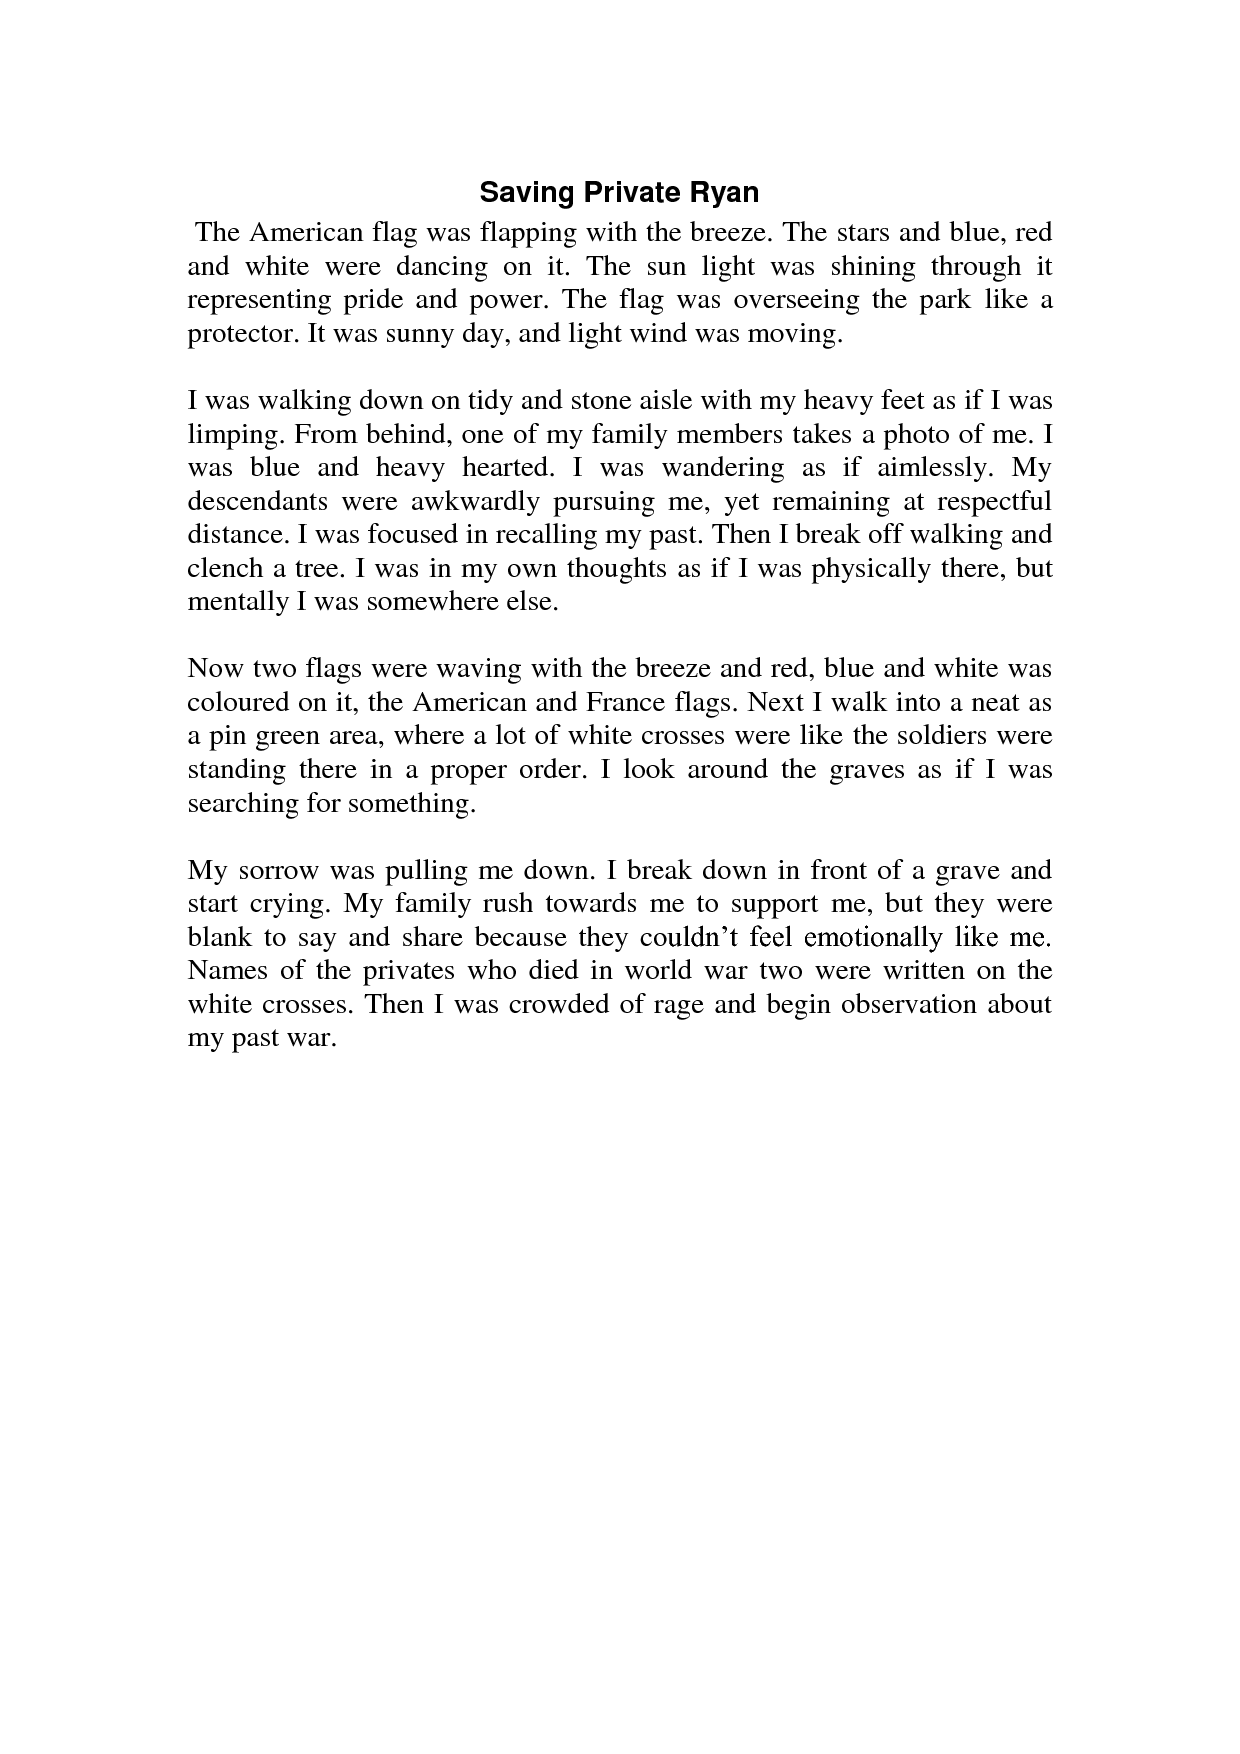 short story arthur the usemite essay Short story: arthur the usemite essay by essayswap contributor, high school, 12th grade, february 2008  download word file, 12 pages, 00 downloaded 3 times.